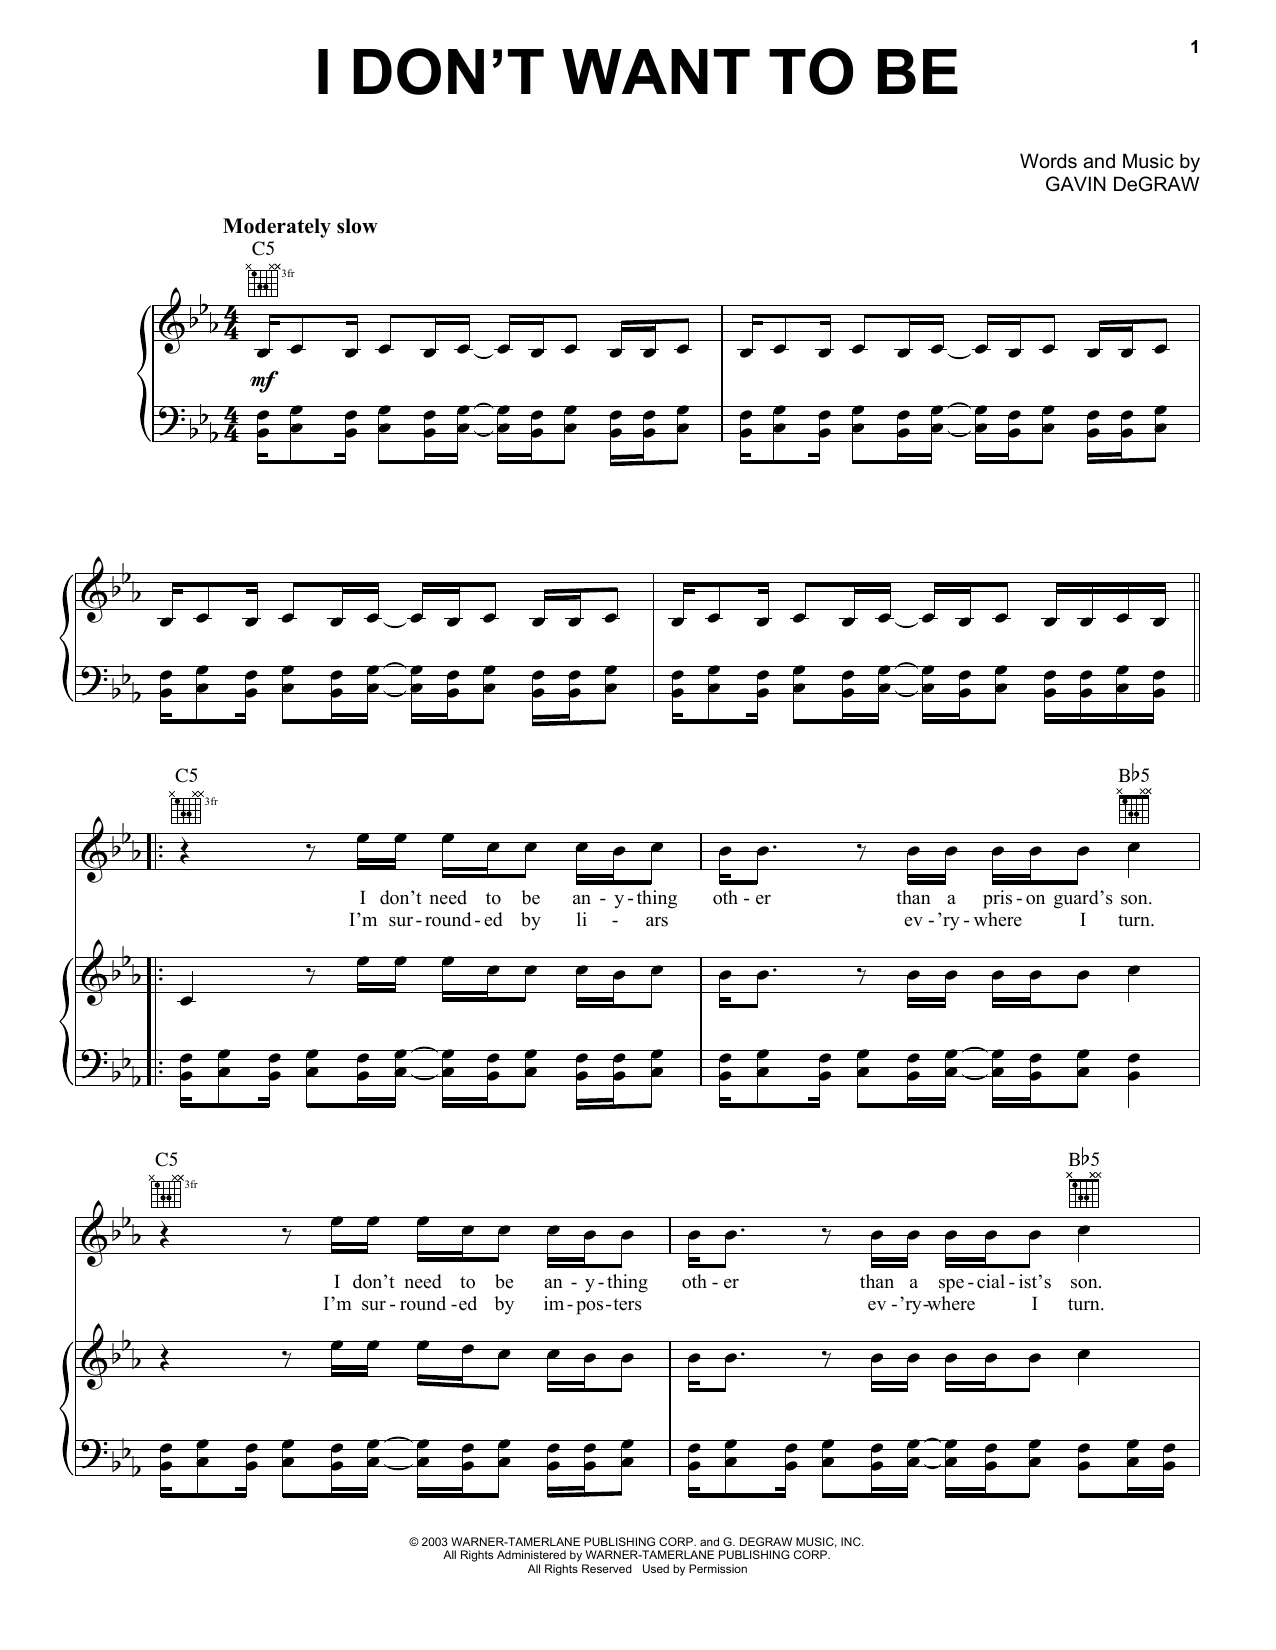 Gavin DeGraw I Don't Want To Be Sheet Music Notes, Chords   Download  Printable Piano, Vocal & Guitar Right Hand Melody PDF Score   SKU 15